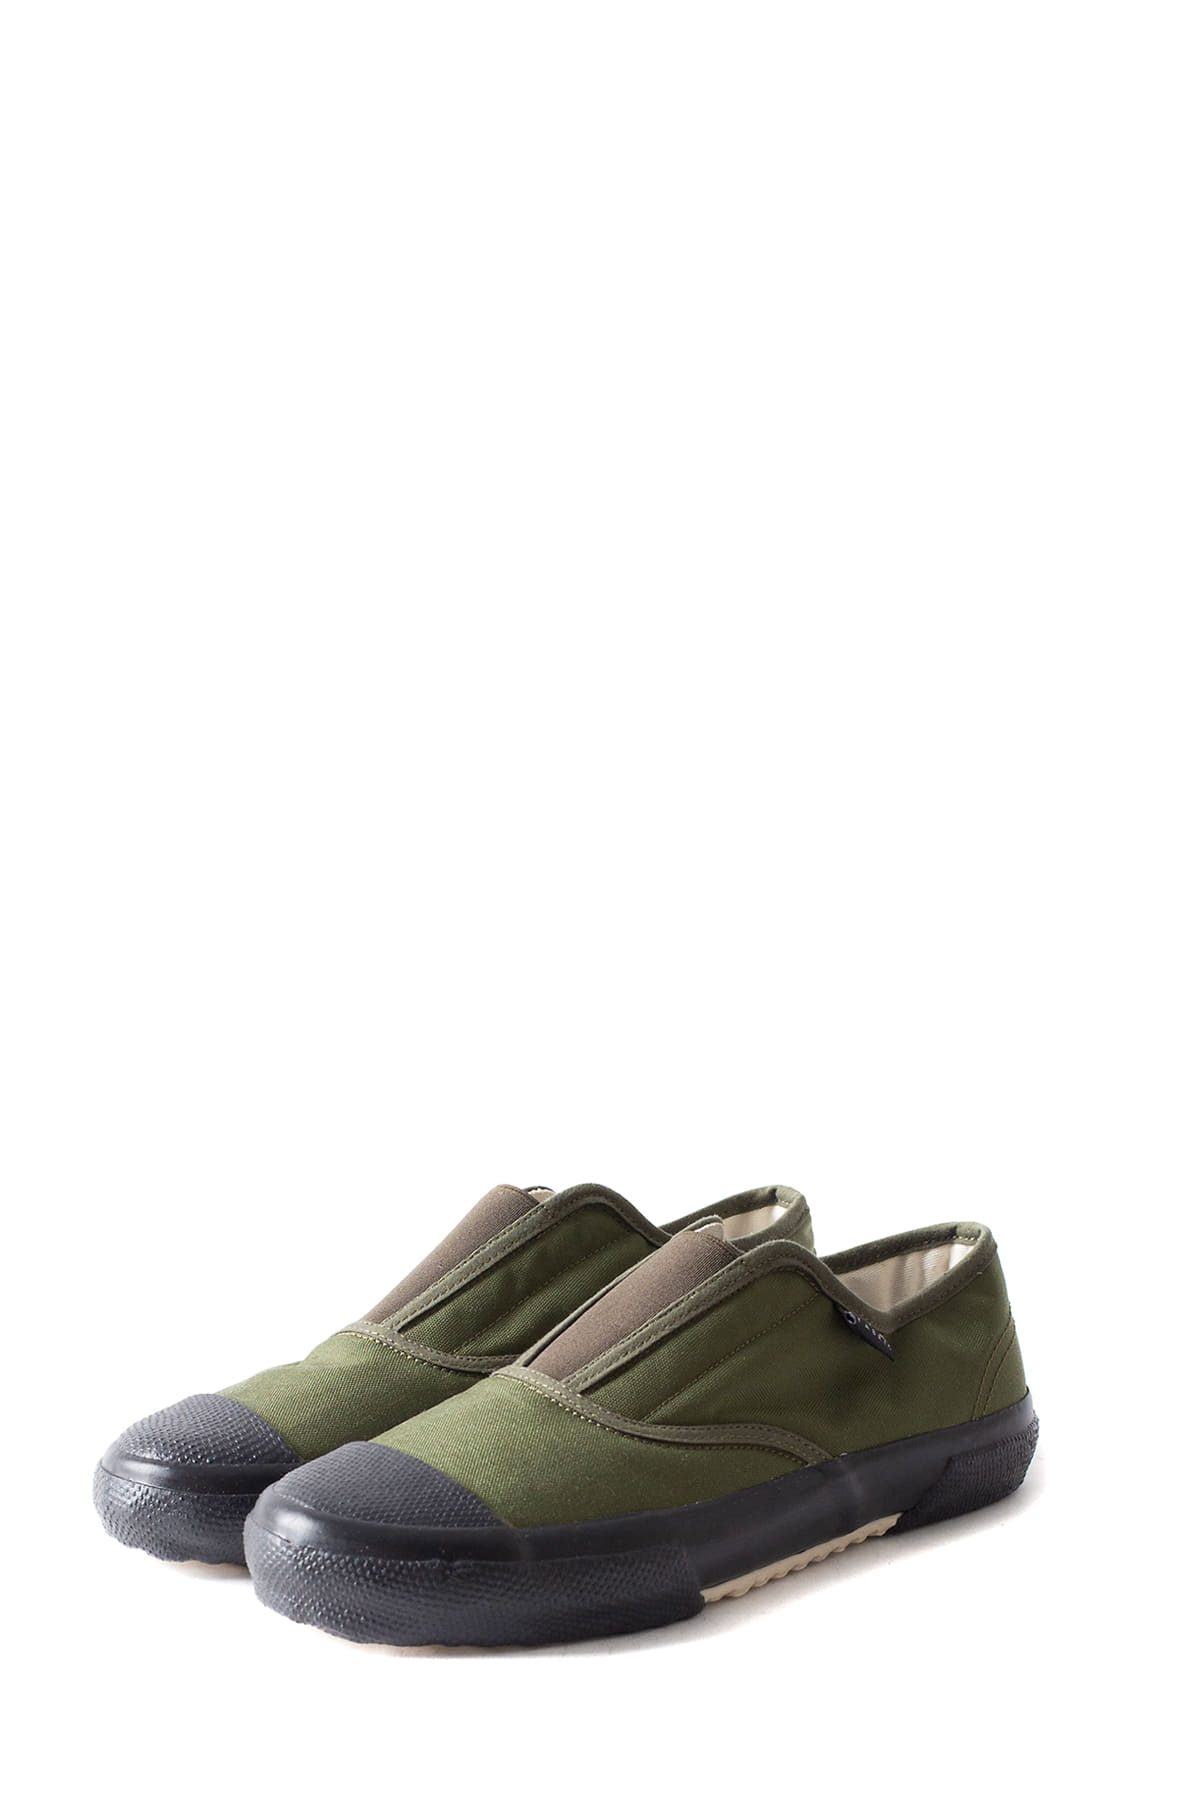 REPRODUCTION OF FOUND : Italian Military Trainer (Olive)